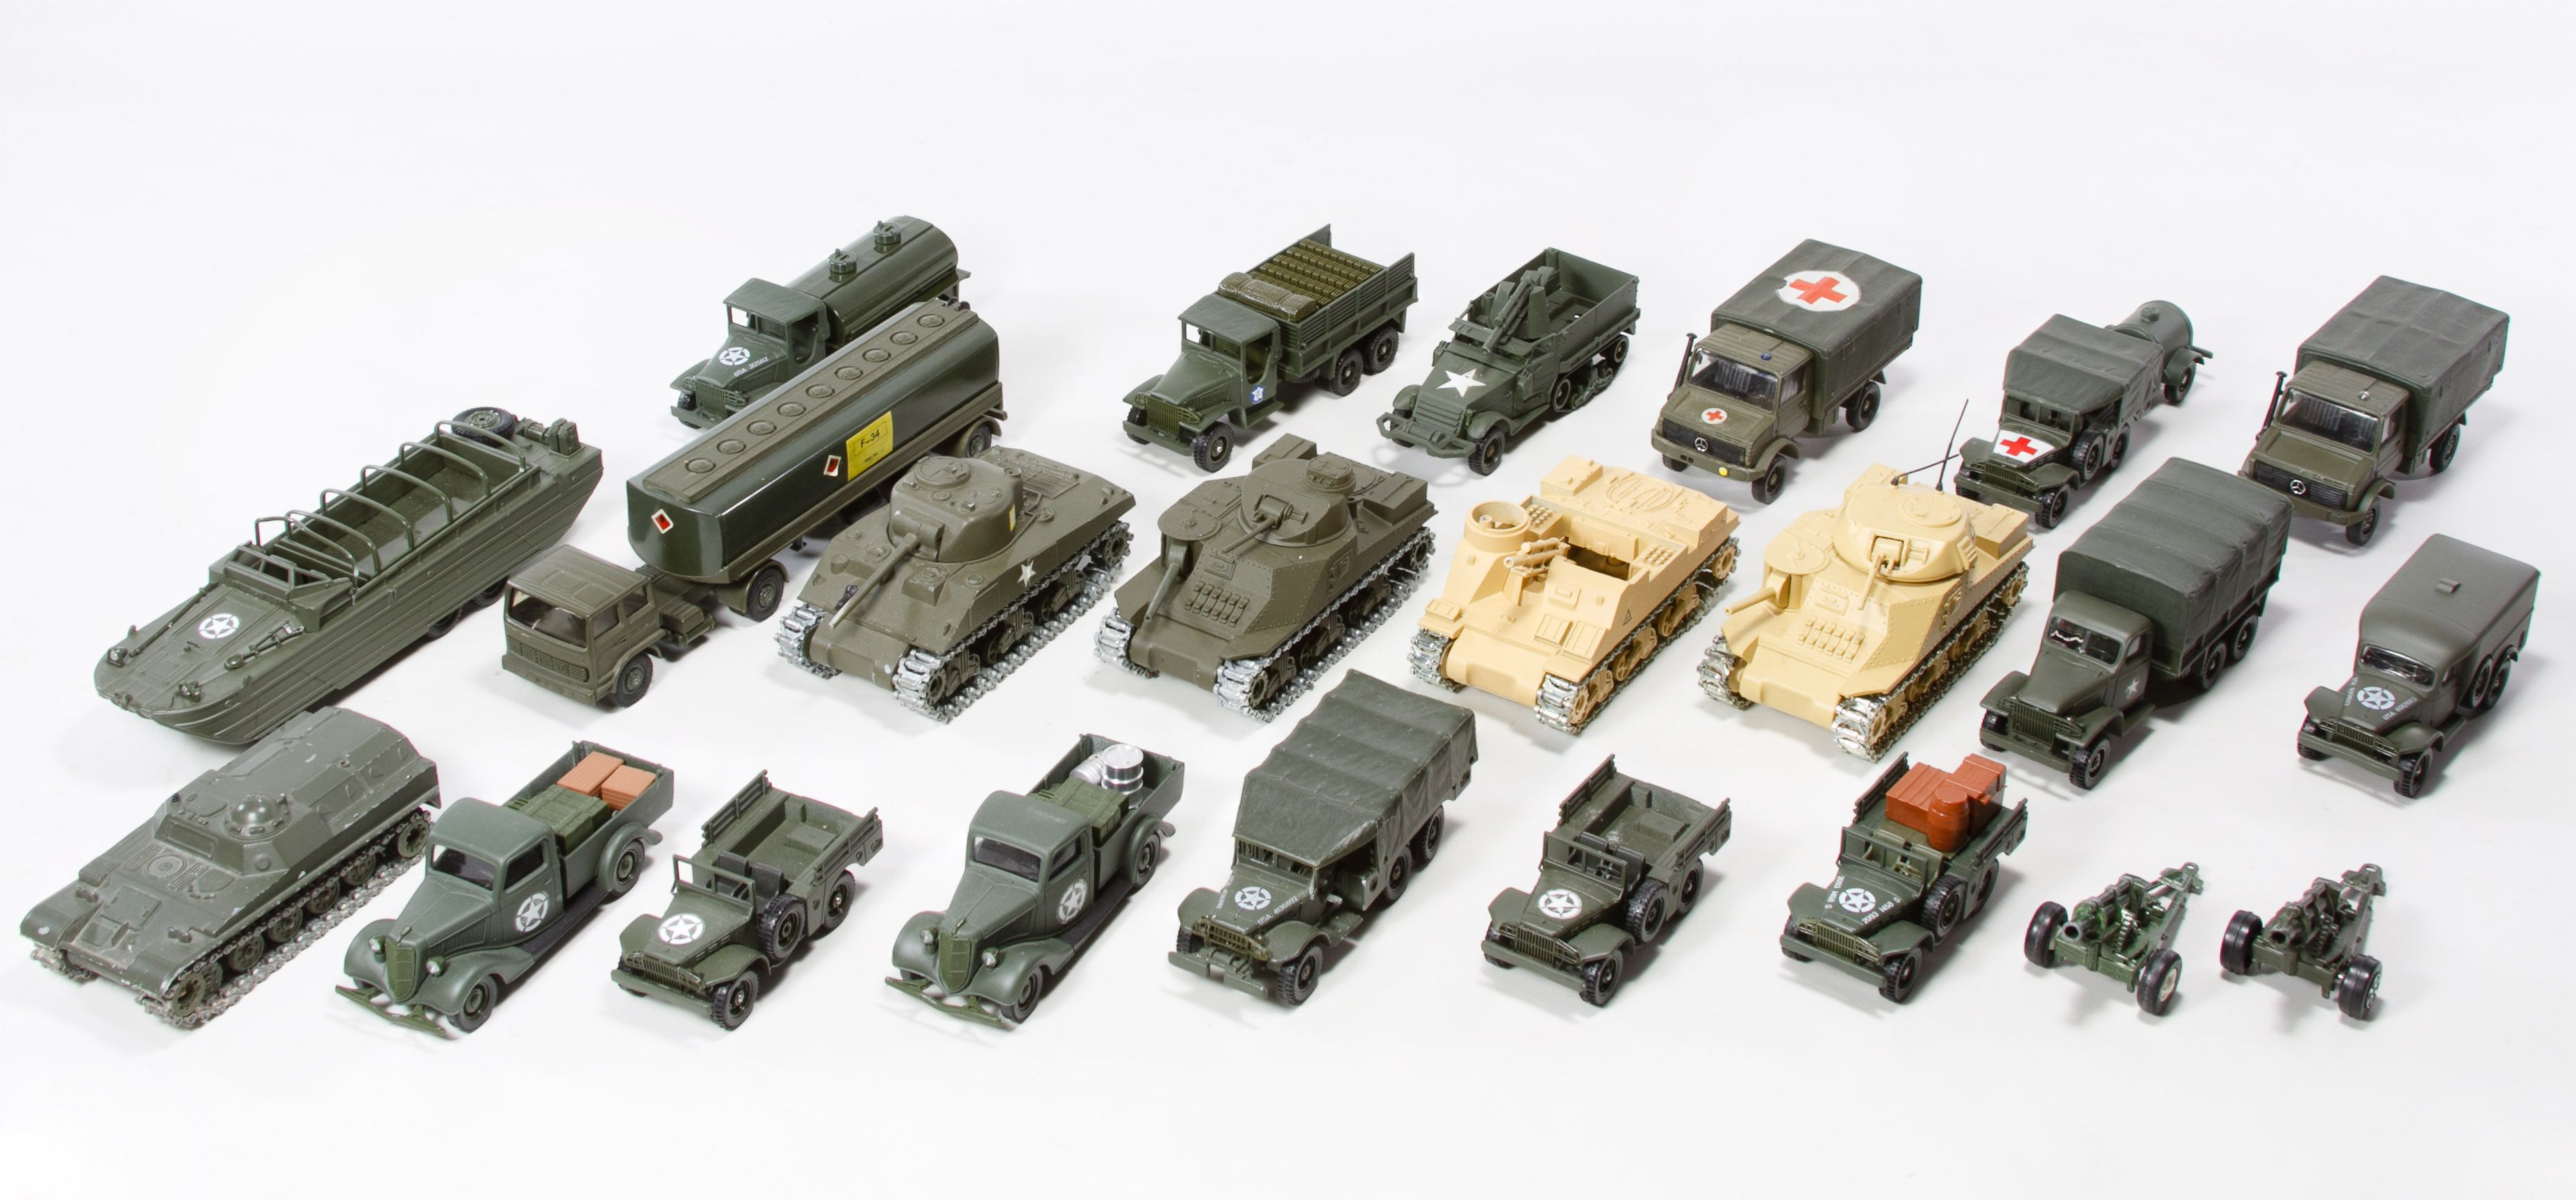 Lot 661 Solido Toy Military Vehicle Assortment Military